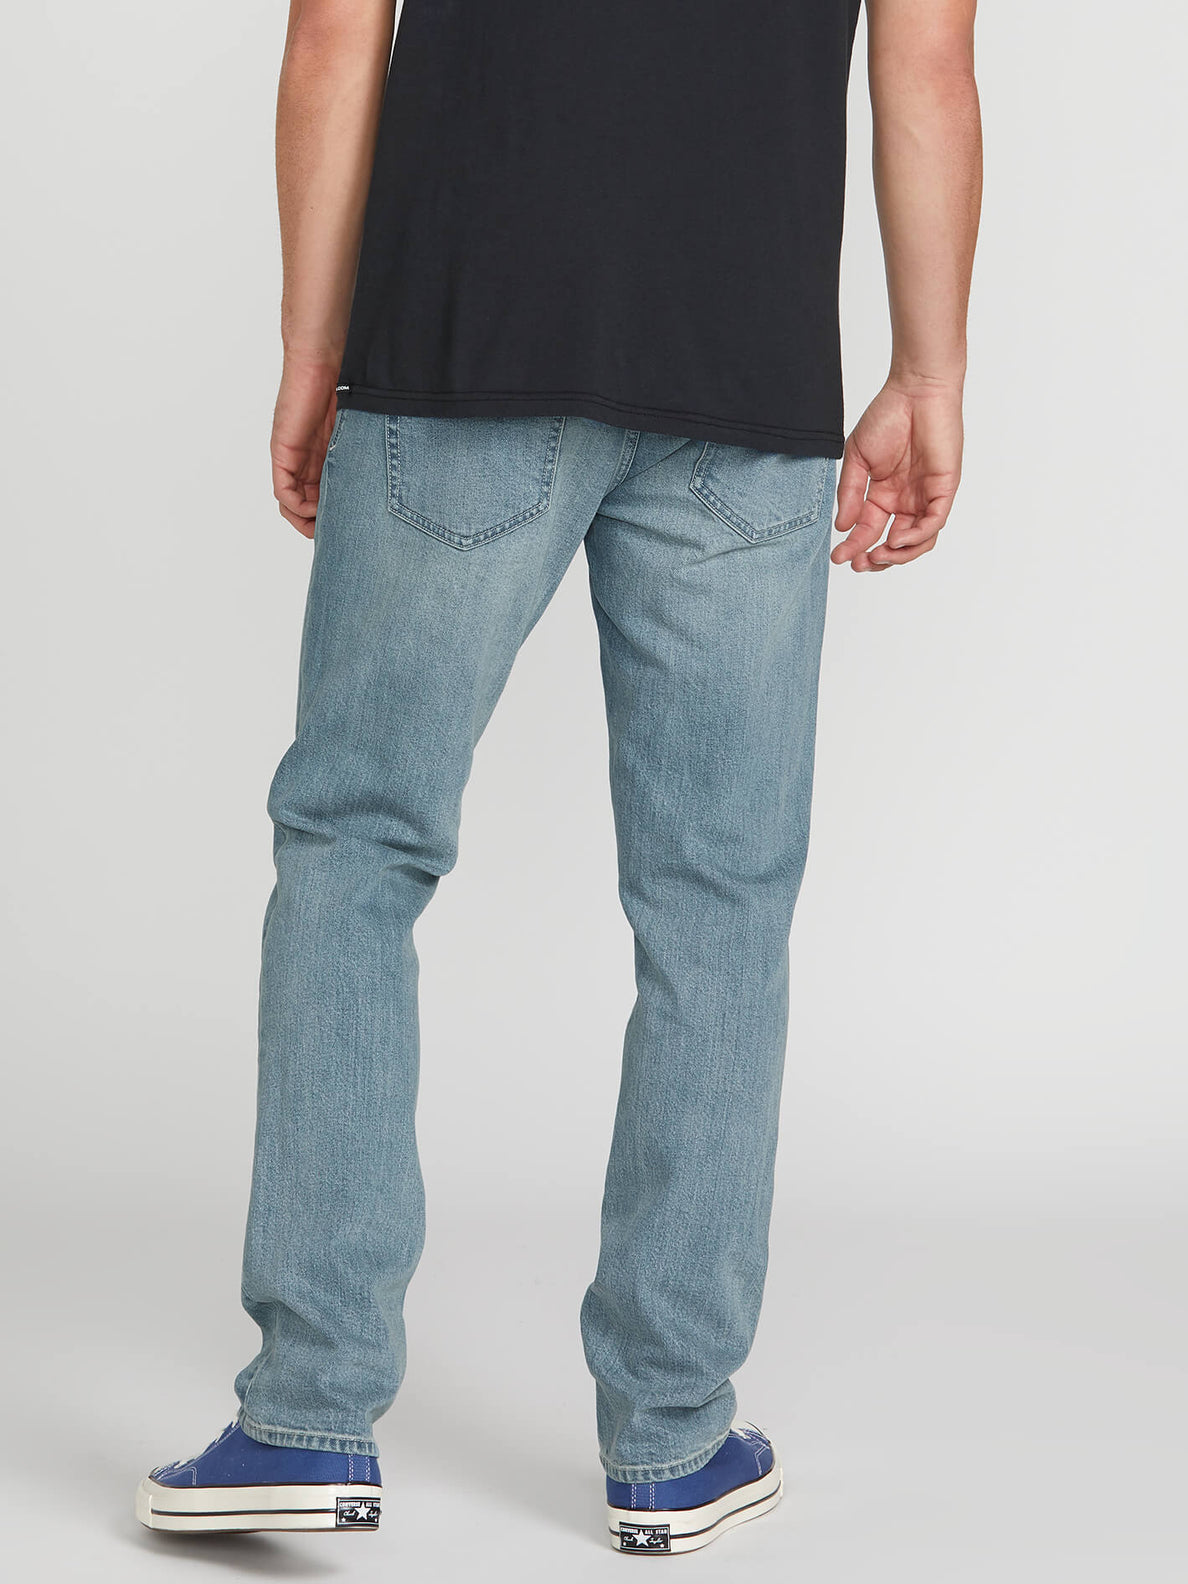 Vorta Slim Fit Jeans - Wide Goods Light (A1931501_WGL) [2]